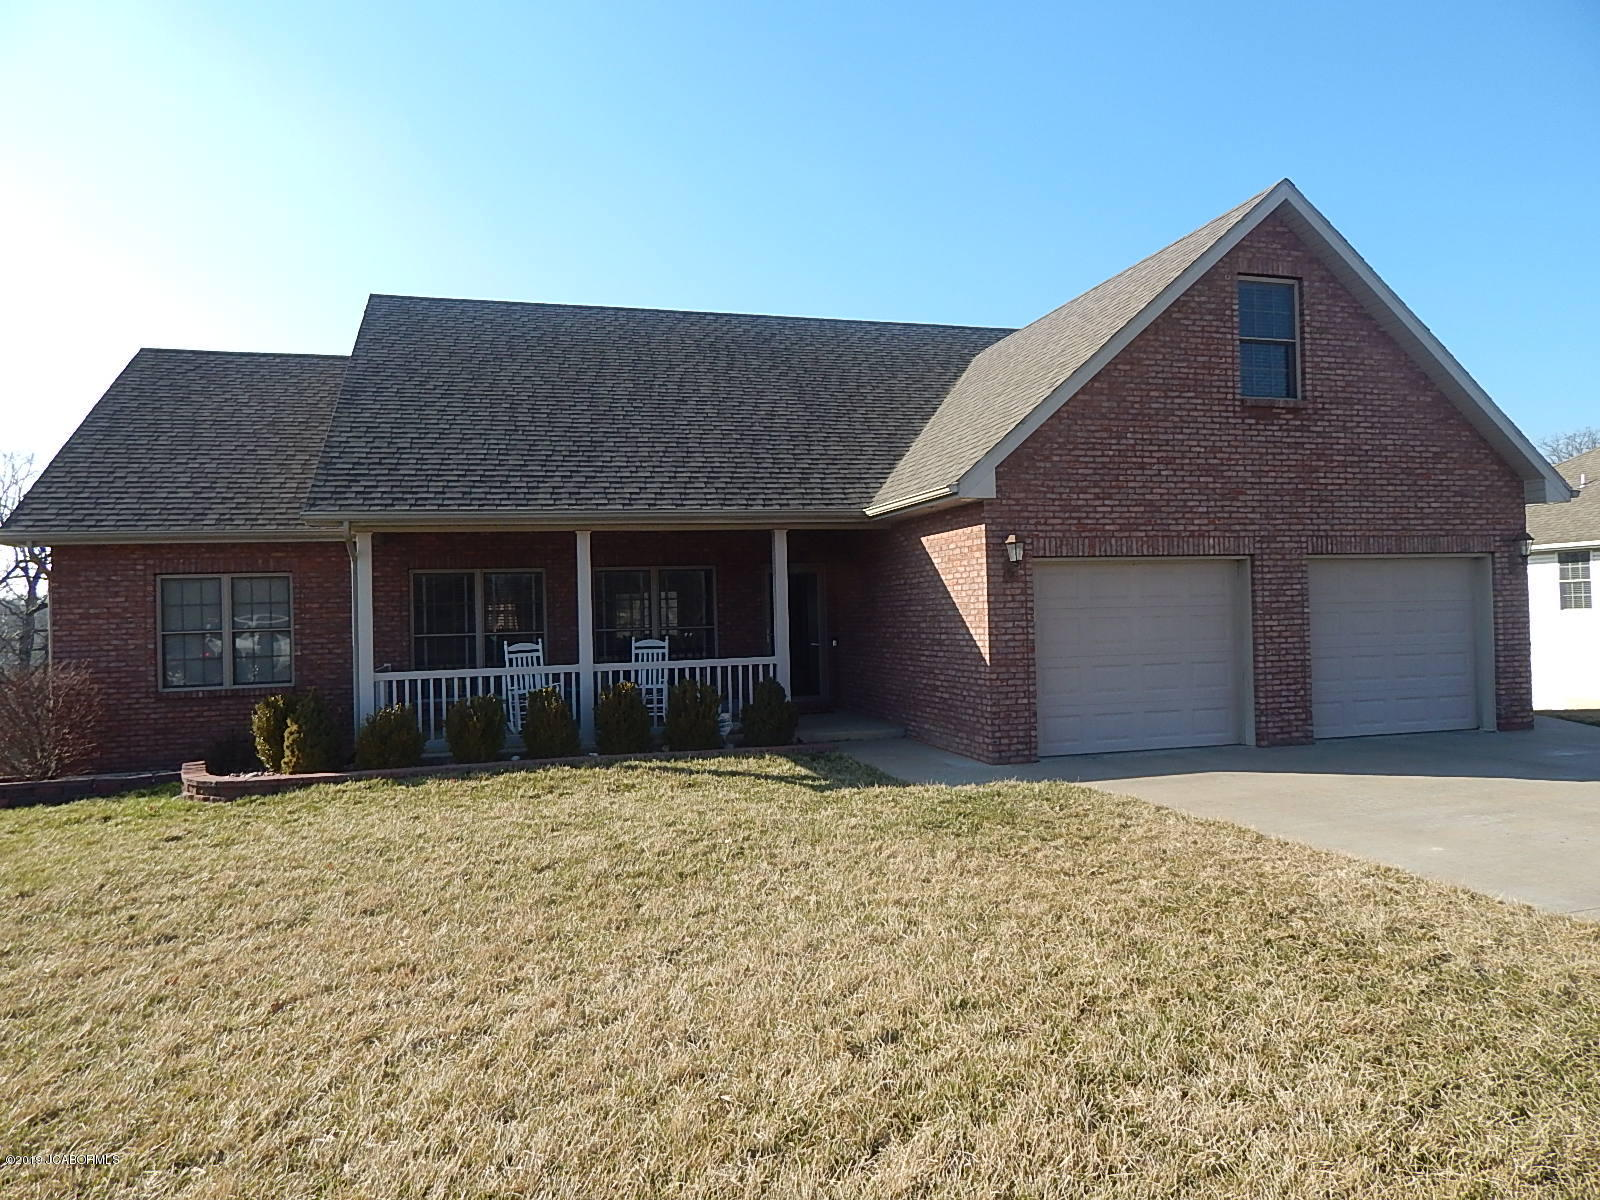 Photo of 1190 CHOCTAW RIDGE DRIVE Holts Summit MO 65043